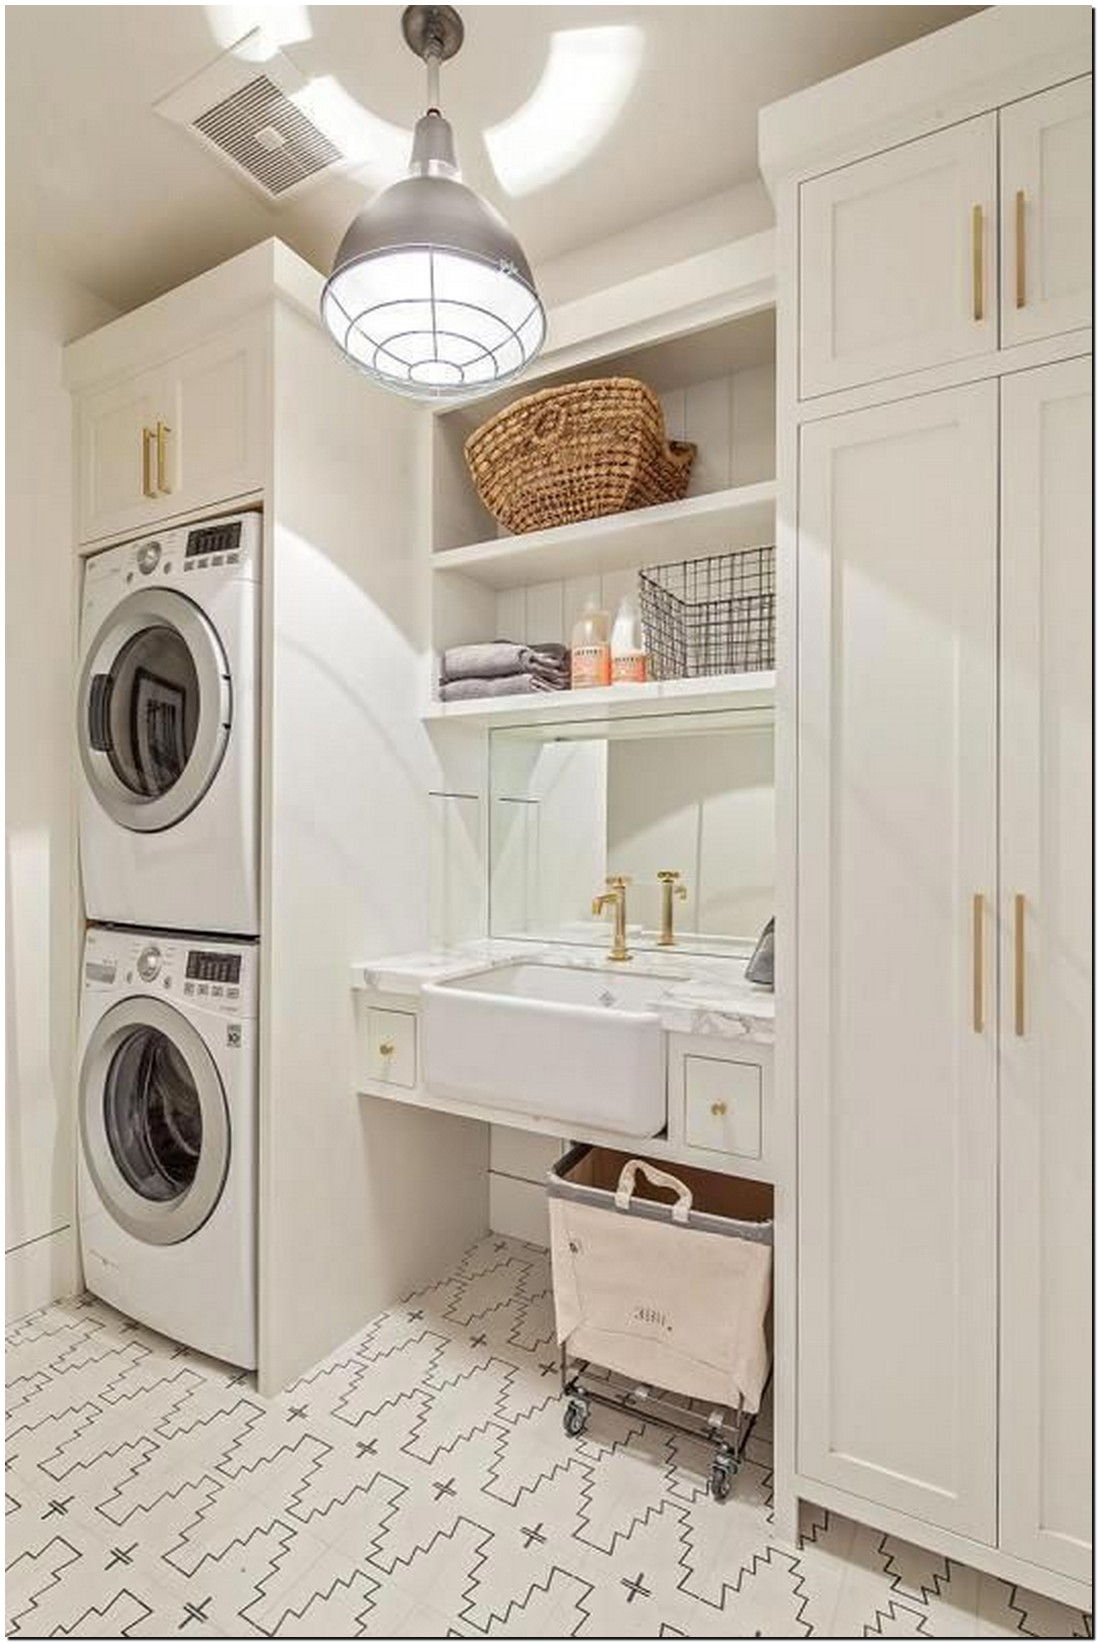 40+ extraordinary design and decoration ideas for small laundry rooms 44